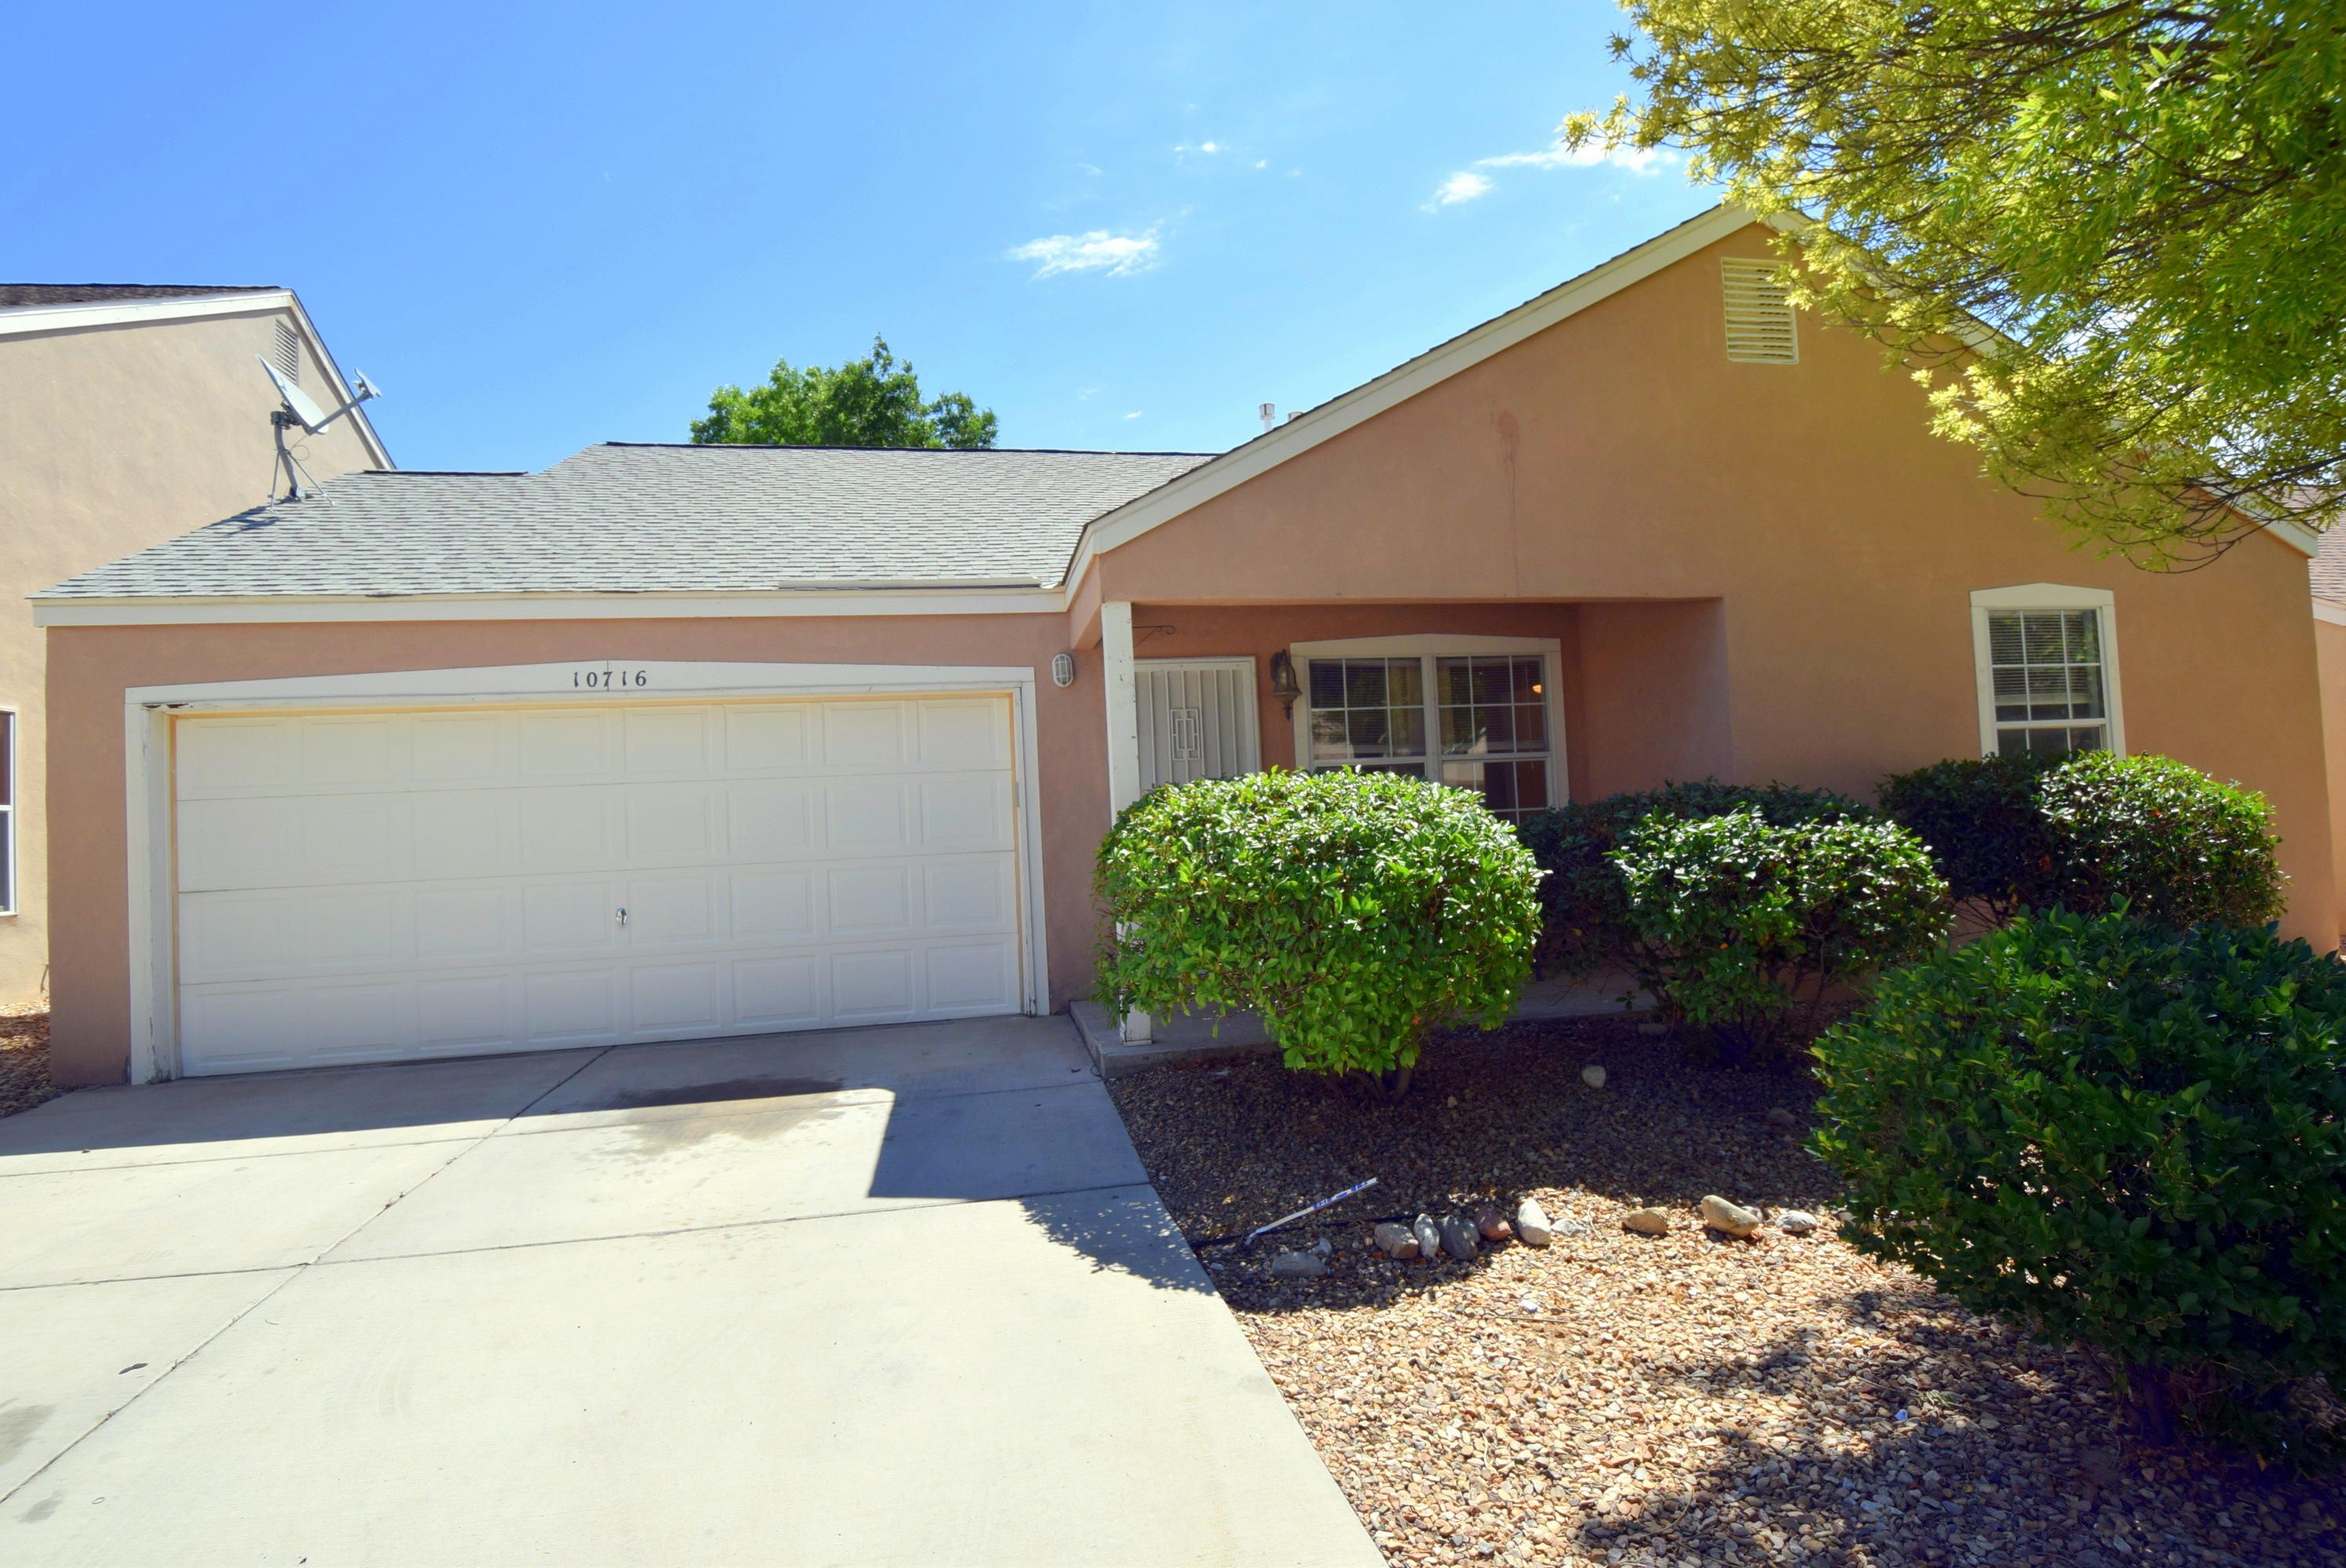 10716 NW Chilili Drive, Northwest Albuquerque and Northwest Heights, New Mexico